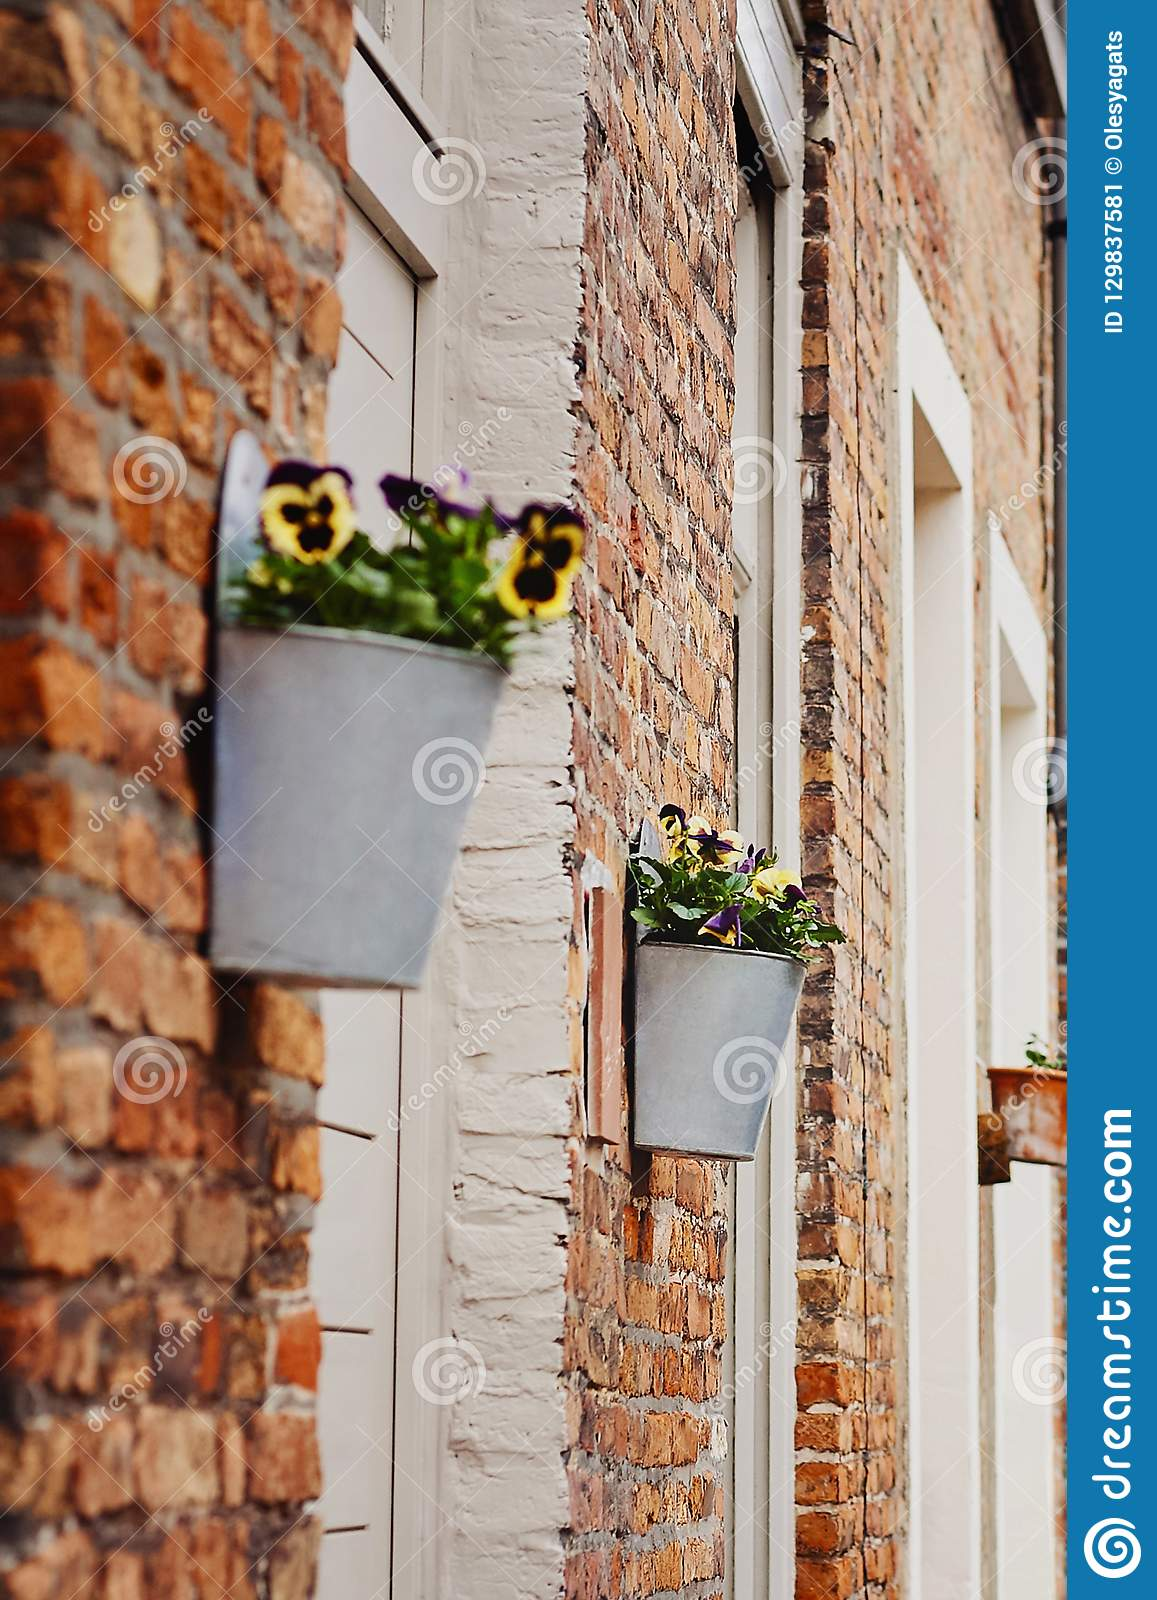 Pansy flowers in flower pot outside on wall of house